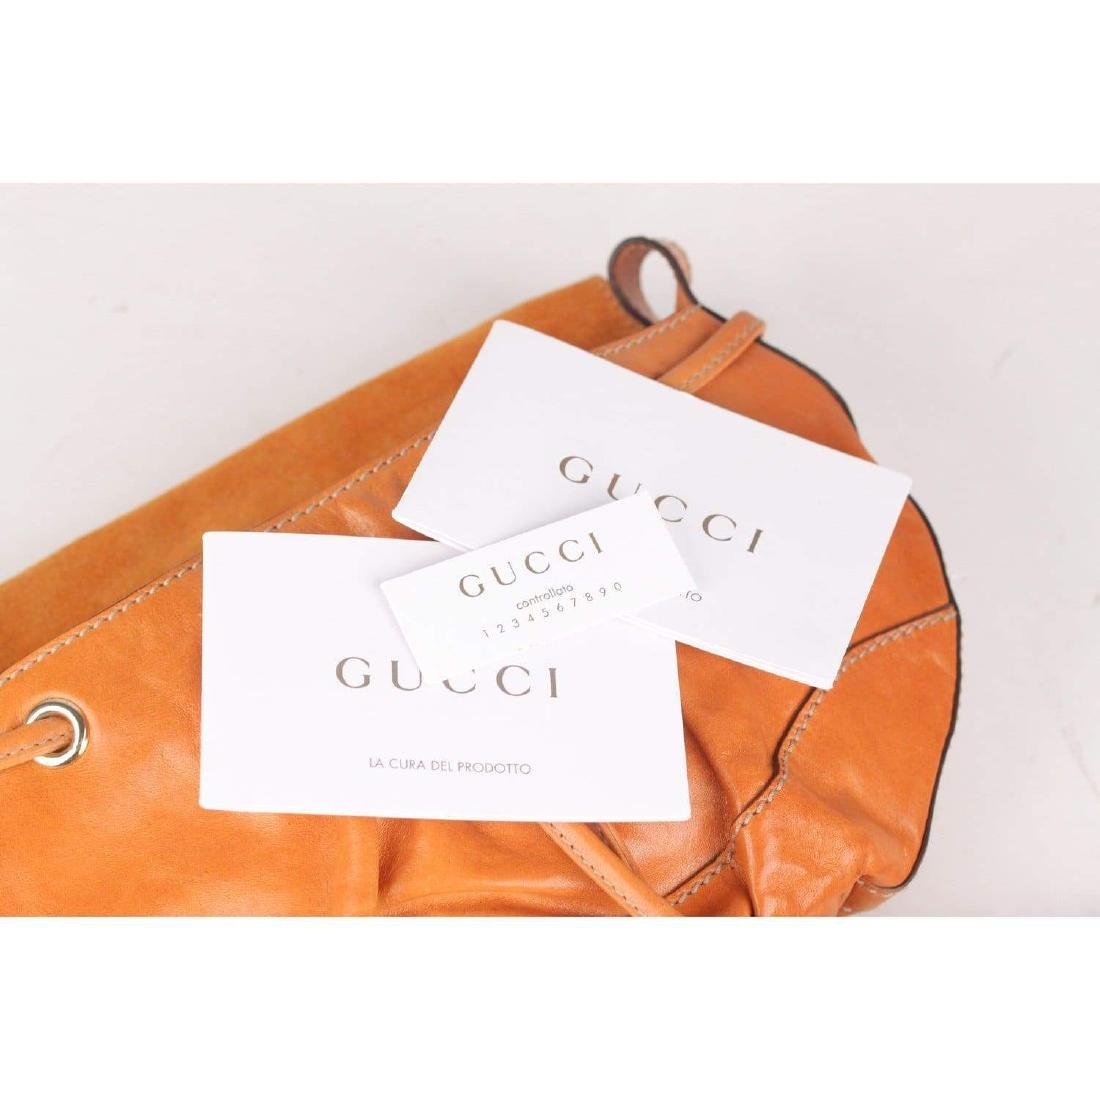 Gucci Tribeca Tattoo Style Shoulder Bag with Tassels - 10